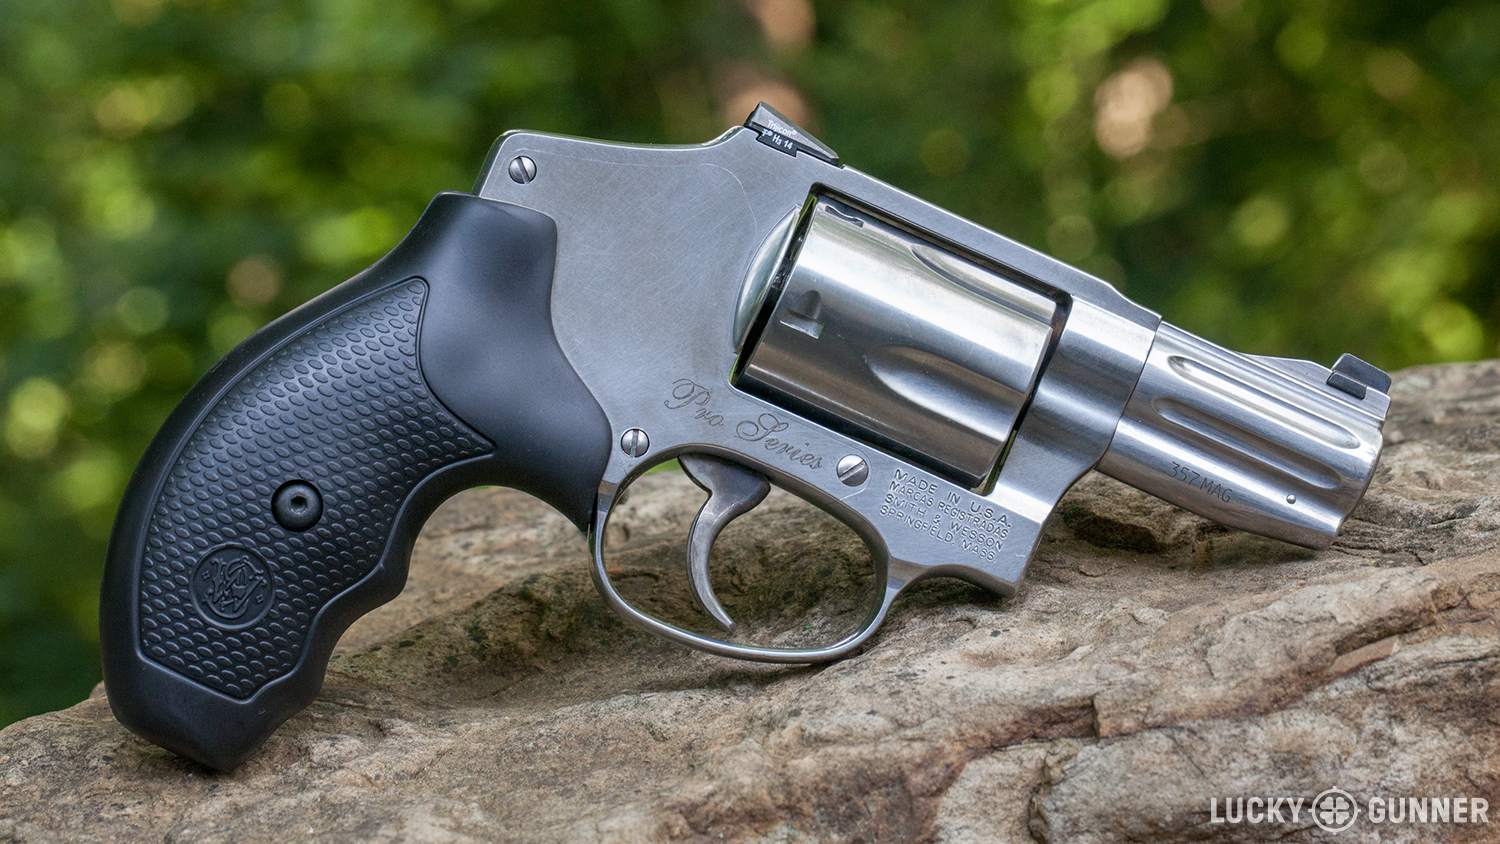 Smith & Wesson 640 Pro